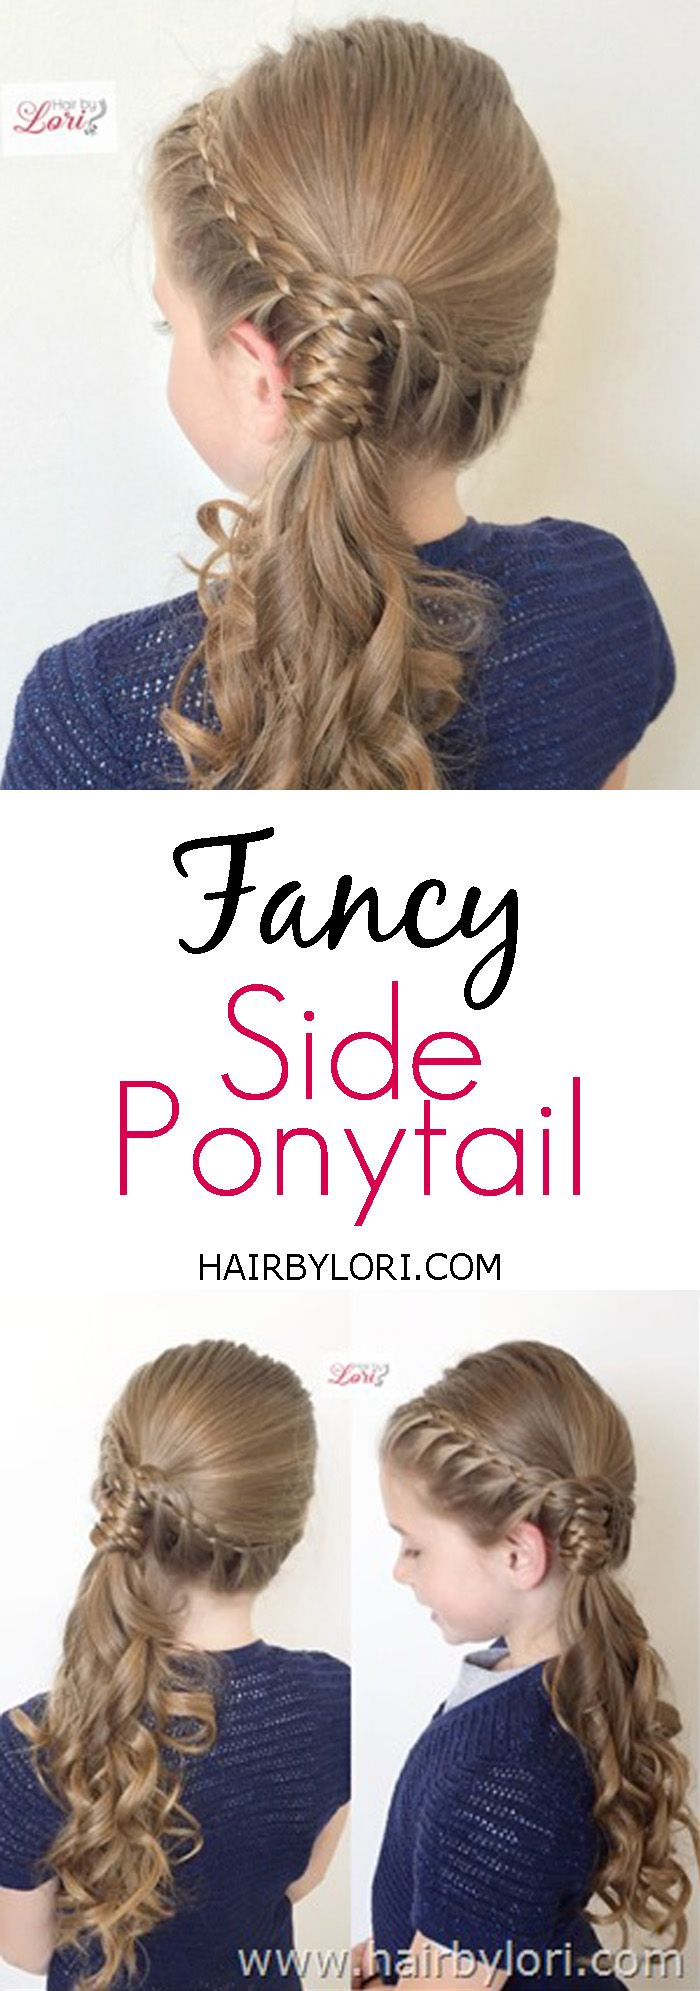 Quick Hairstyles For School 40 Best Quick Hairstyles Images On Pinterest  Hairstyle Ideas